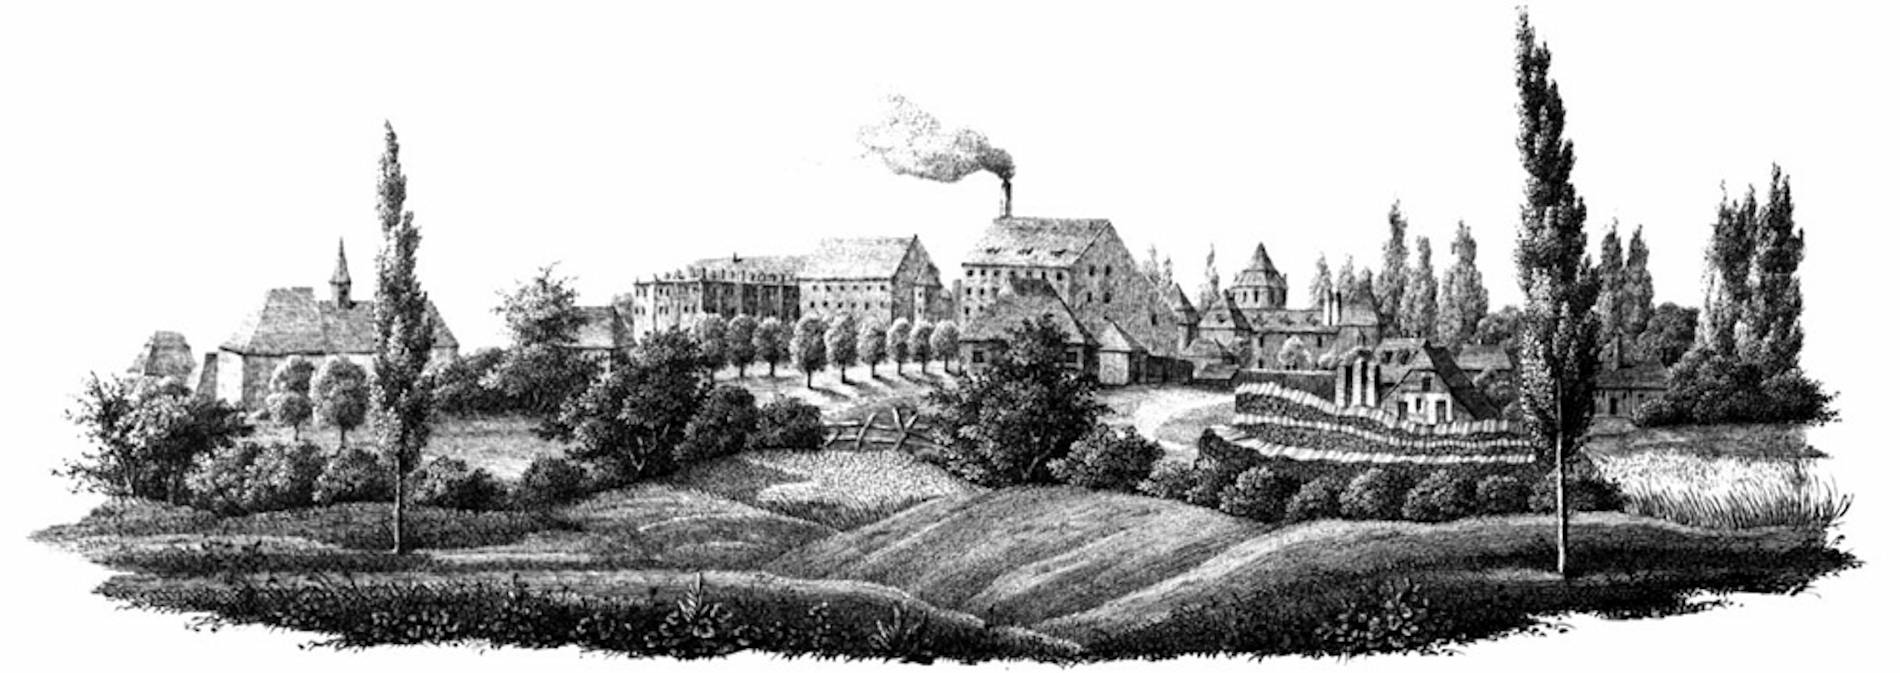 Waghäusel Sugar factory in 1837.